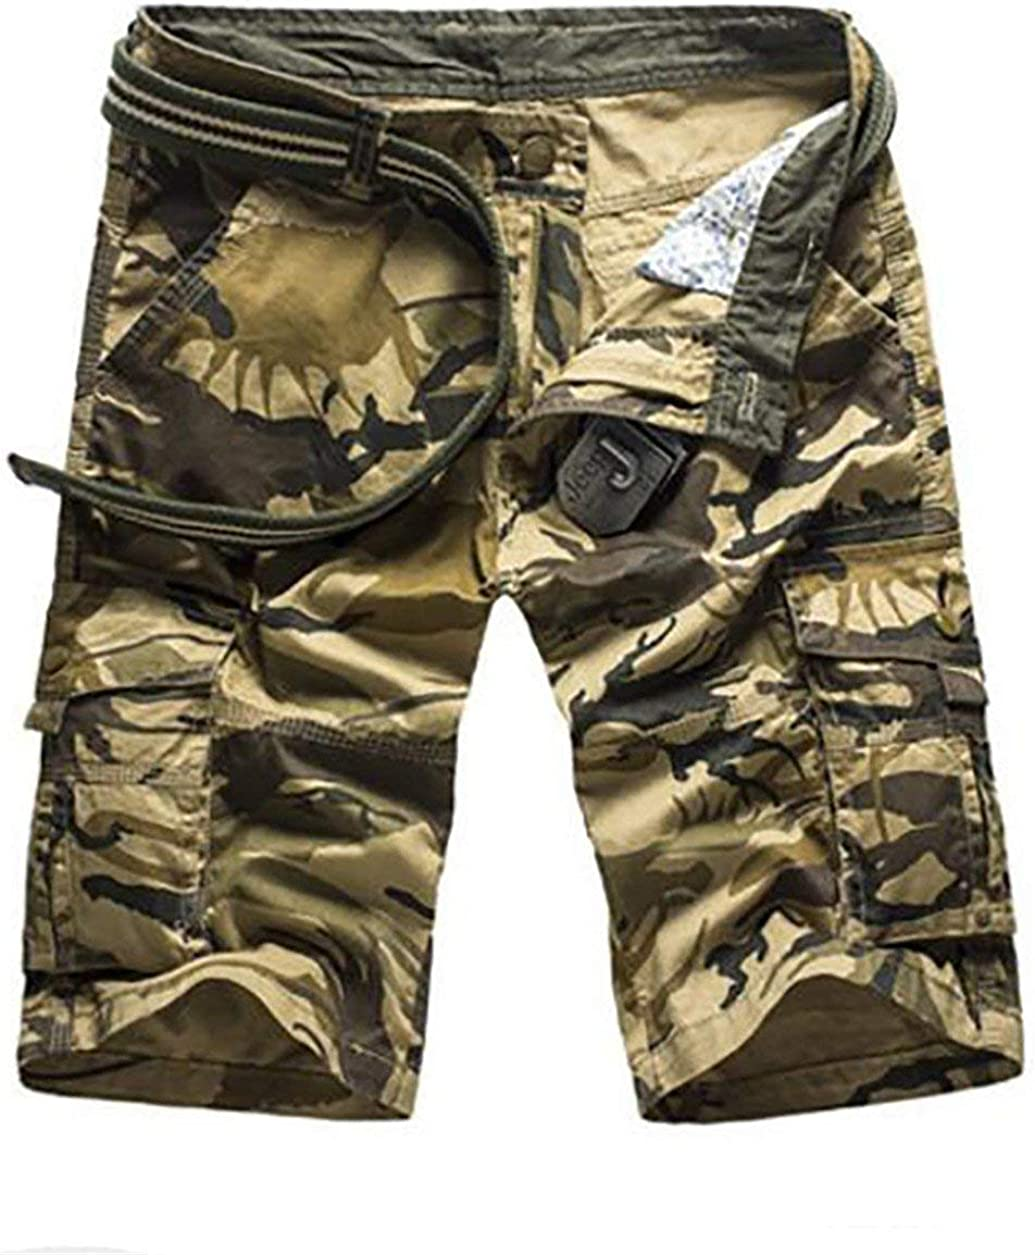 BU2H Mens Camouflage Multi-Pockets Cotton Combat Work Cargo Shorts Khaki US 34